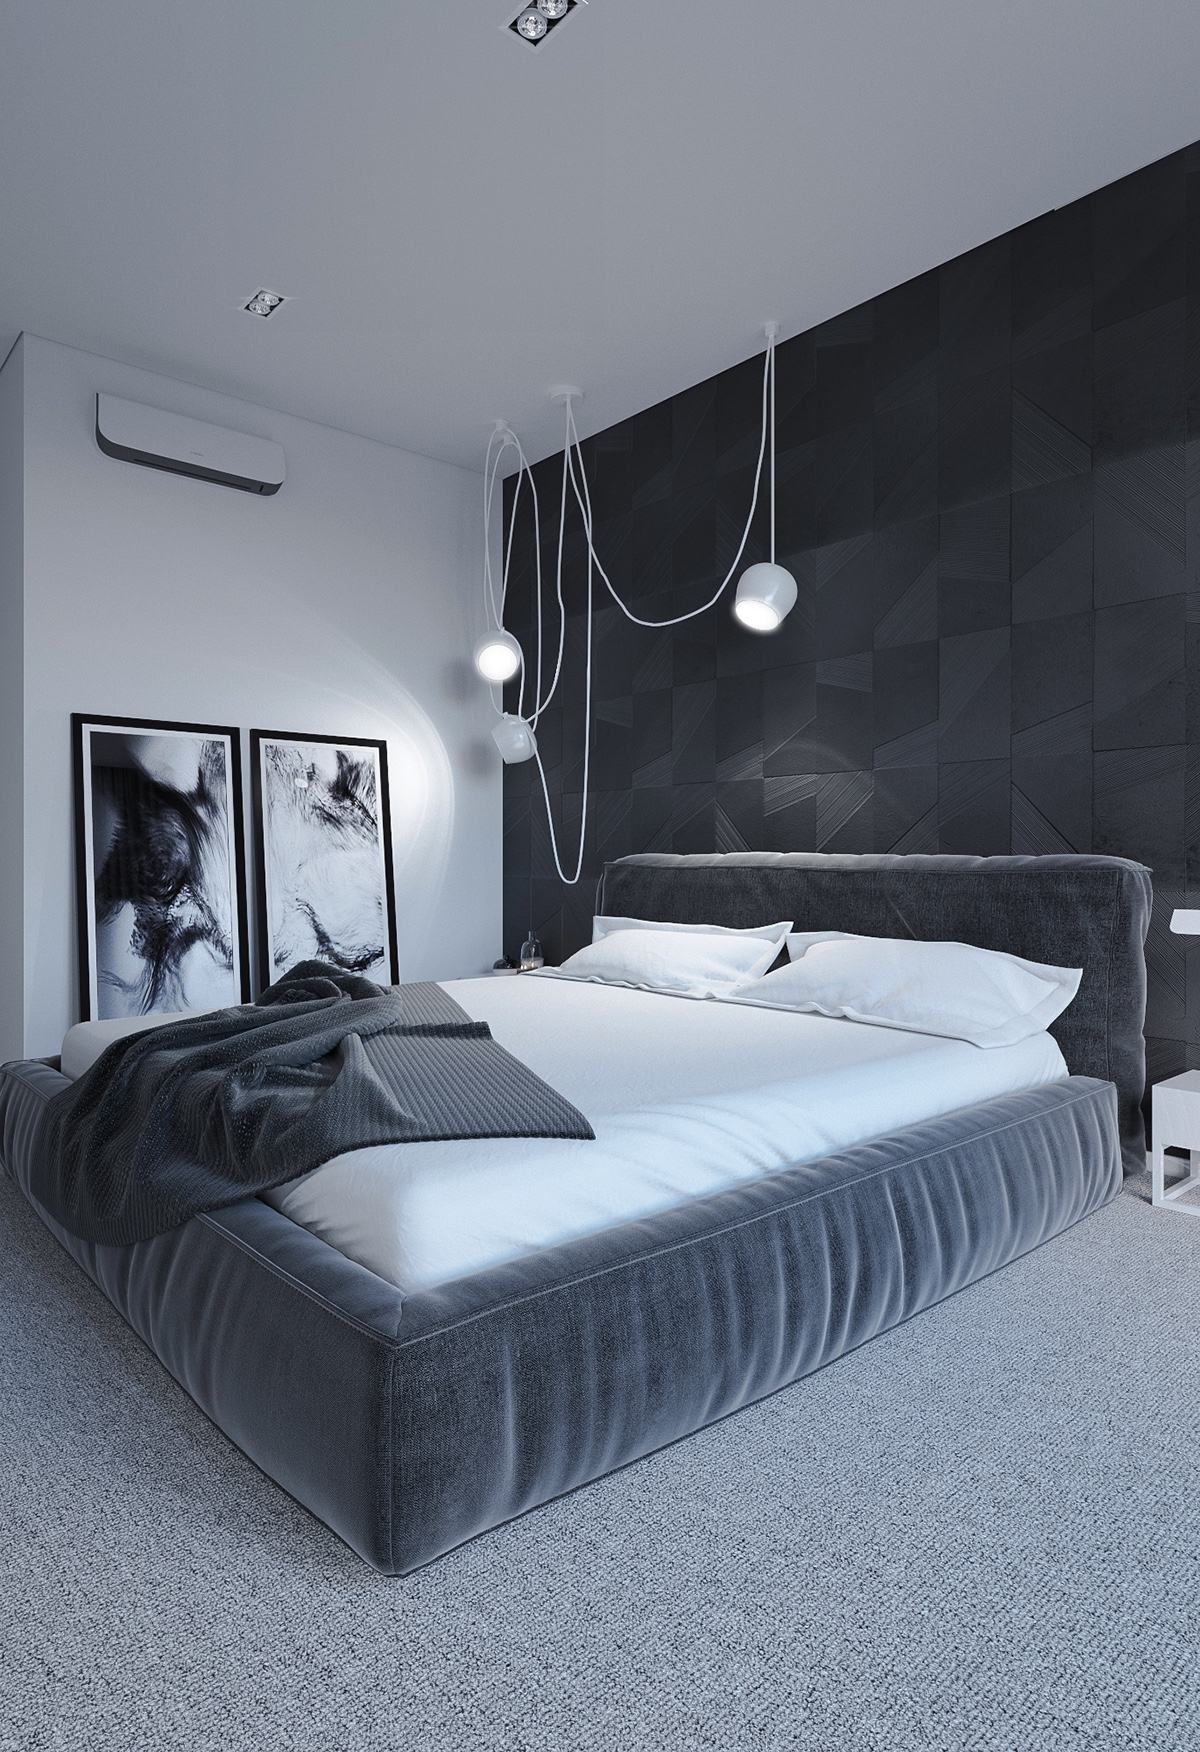 How to Bring Inspiration Into Your Dreams With Dark Bedroom ...